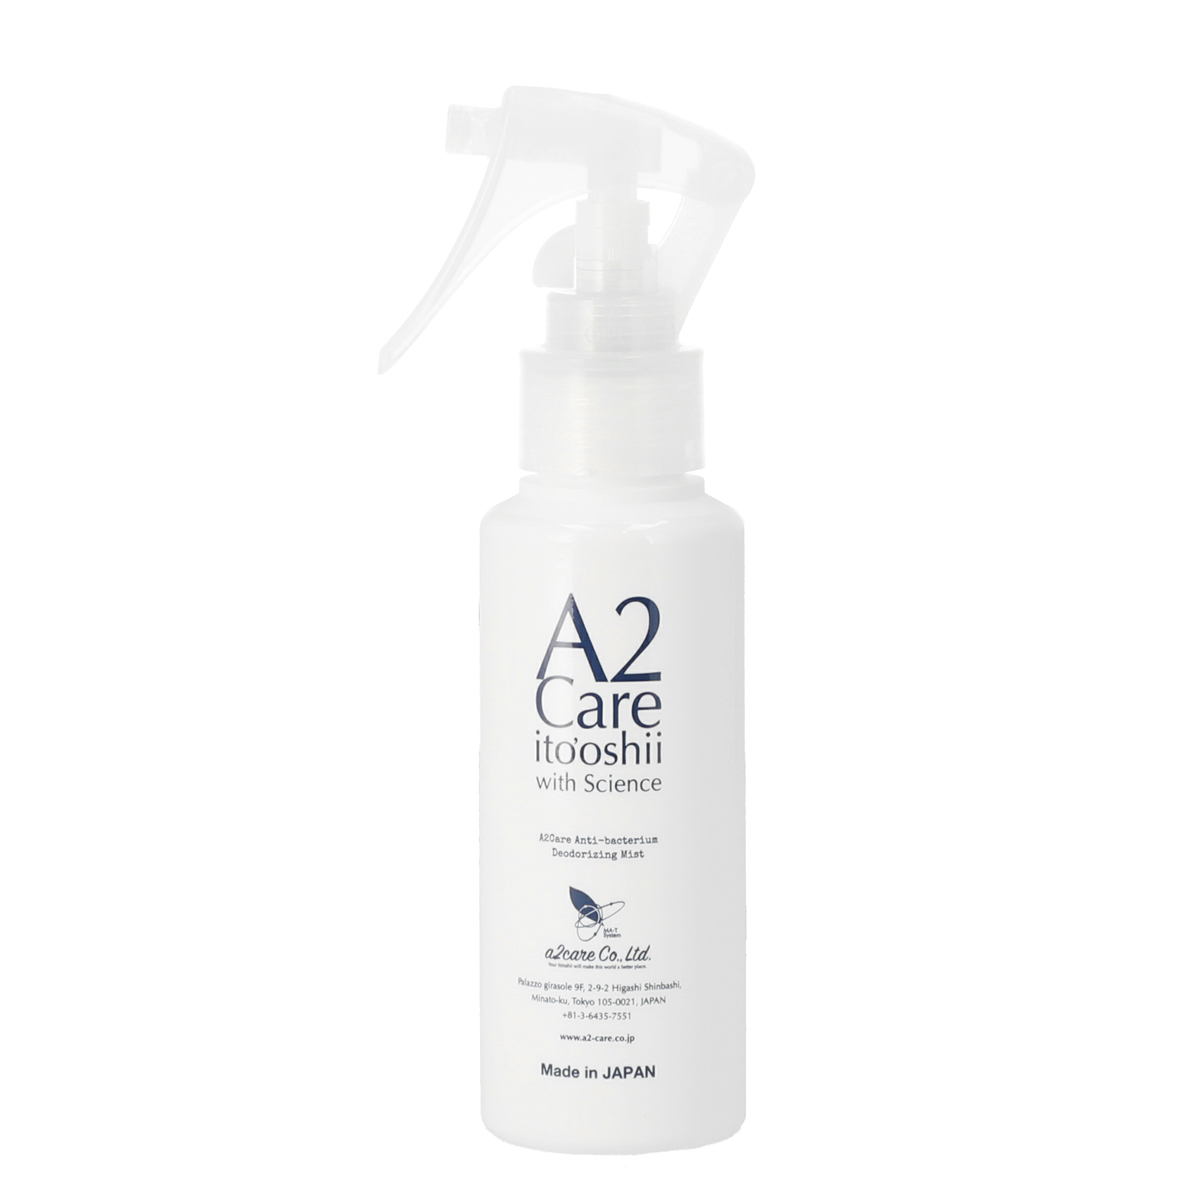 A2Care 除菌 消臭剤スプレー100ml